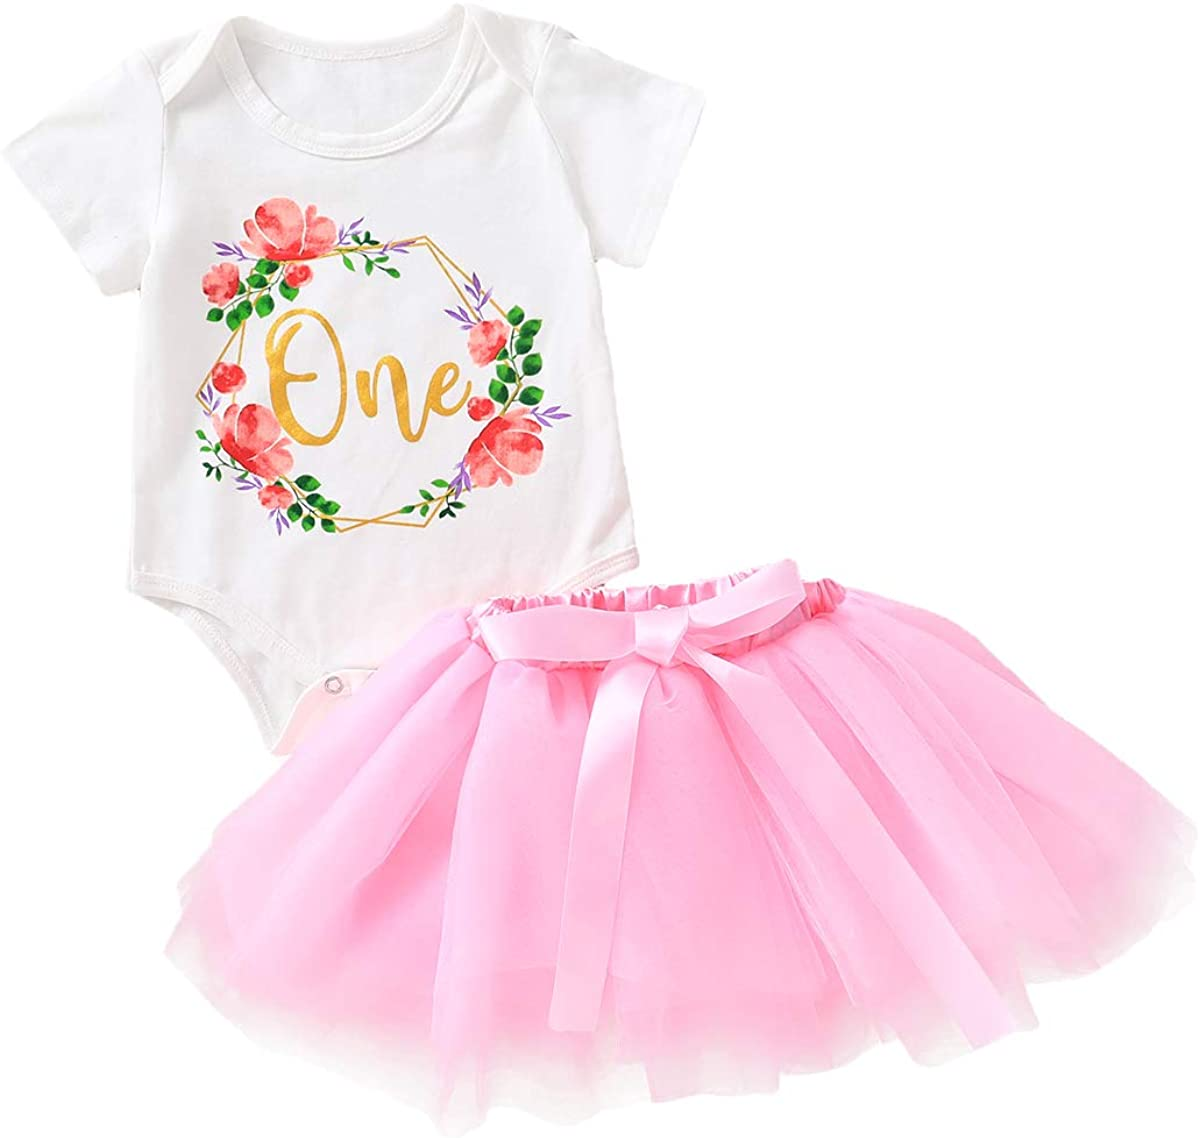 OUTGLE Newborn Baby Girl Ruffle Romper + Tutu Skirt + Headband First Birthday Party Outfits Set